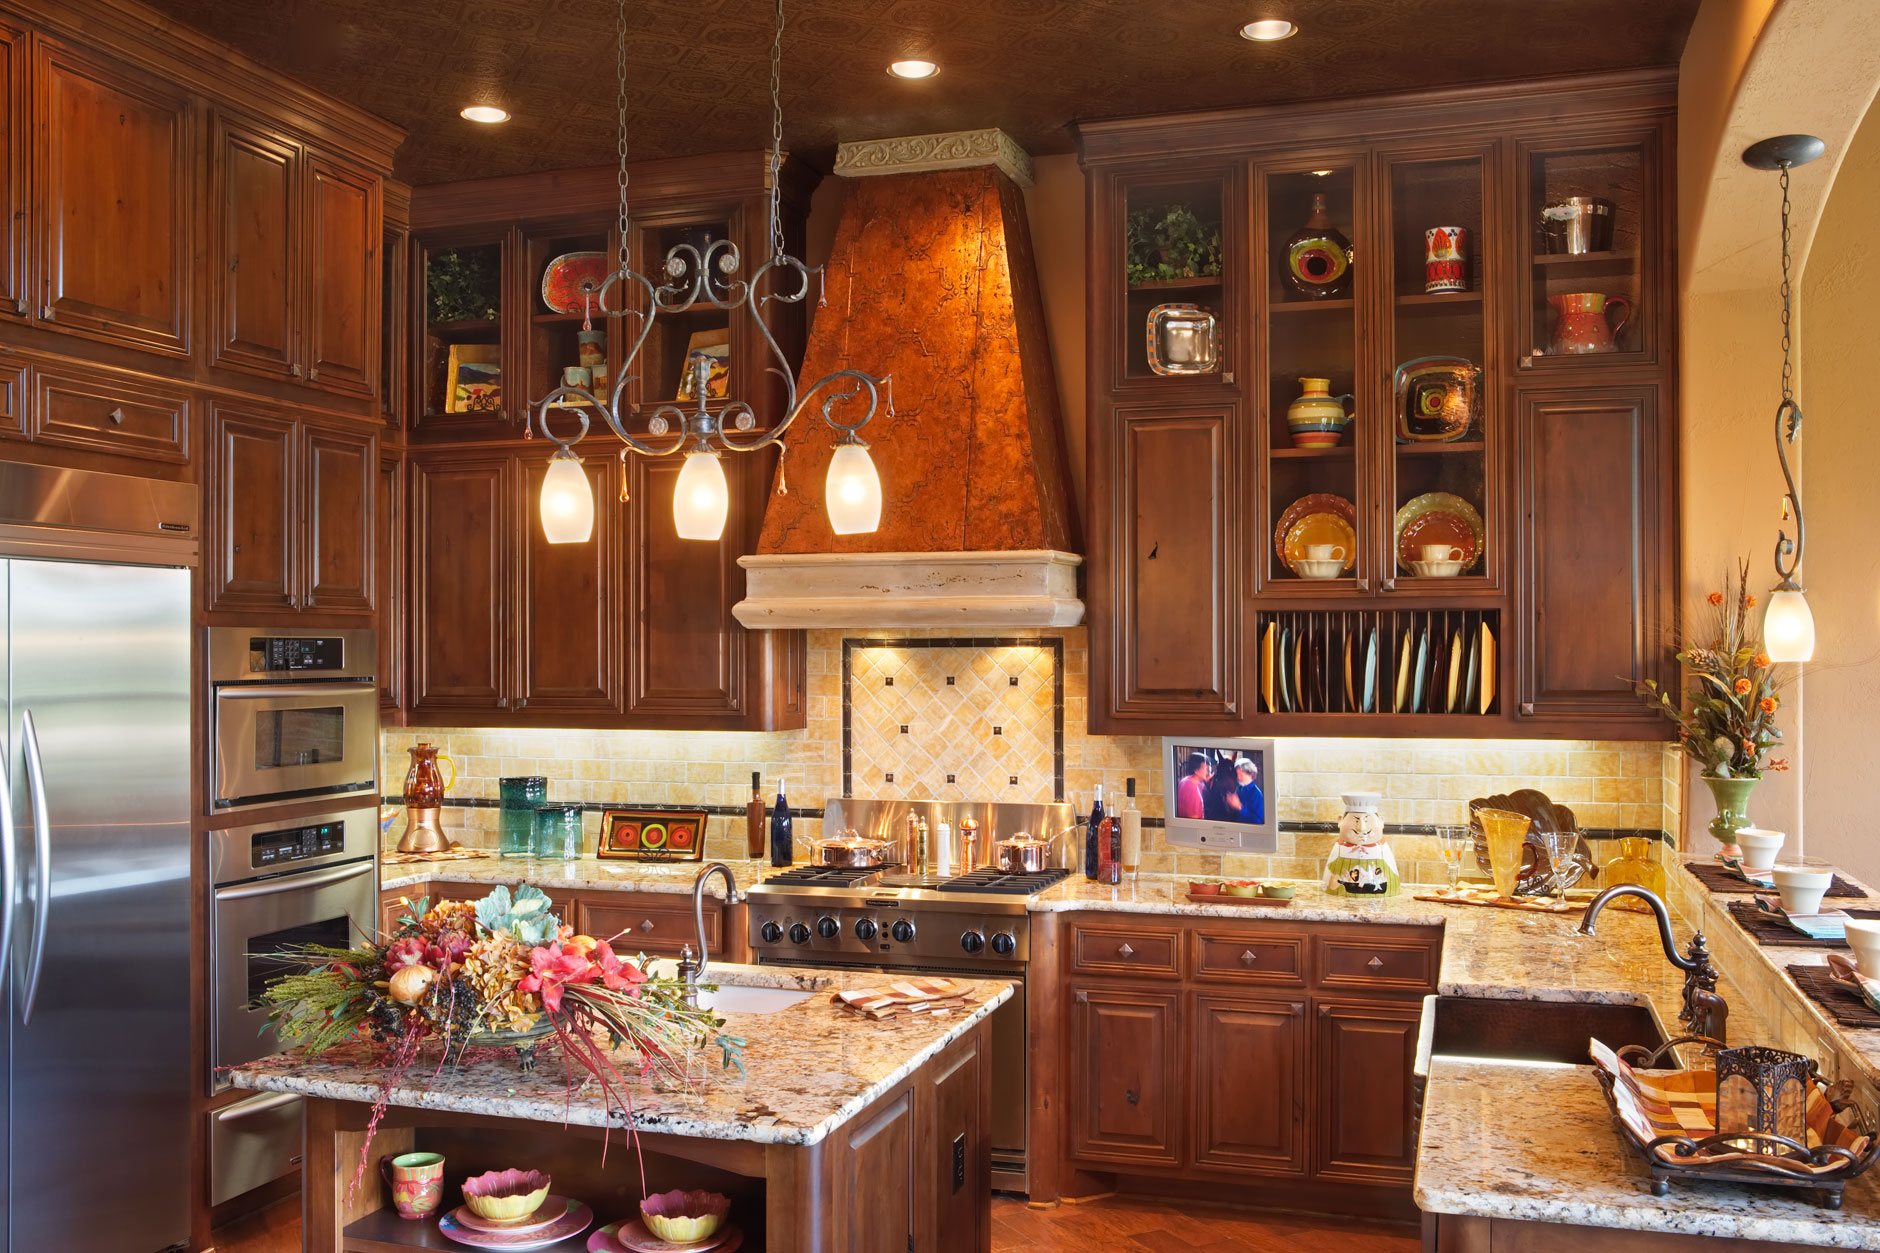 Kitchen cabinets with mitered cabinet doors Knotty Alder with M1, RP1